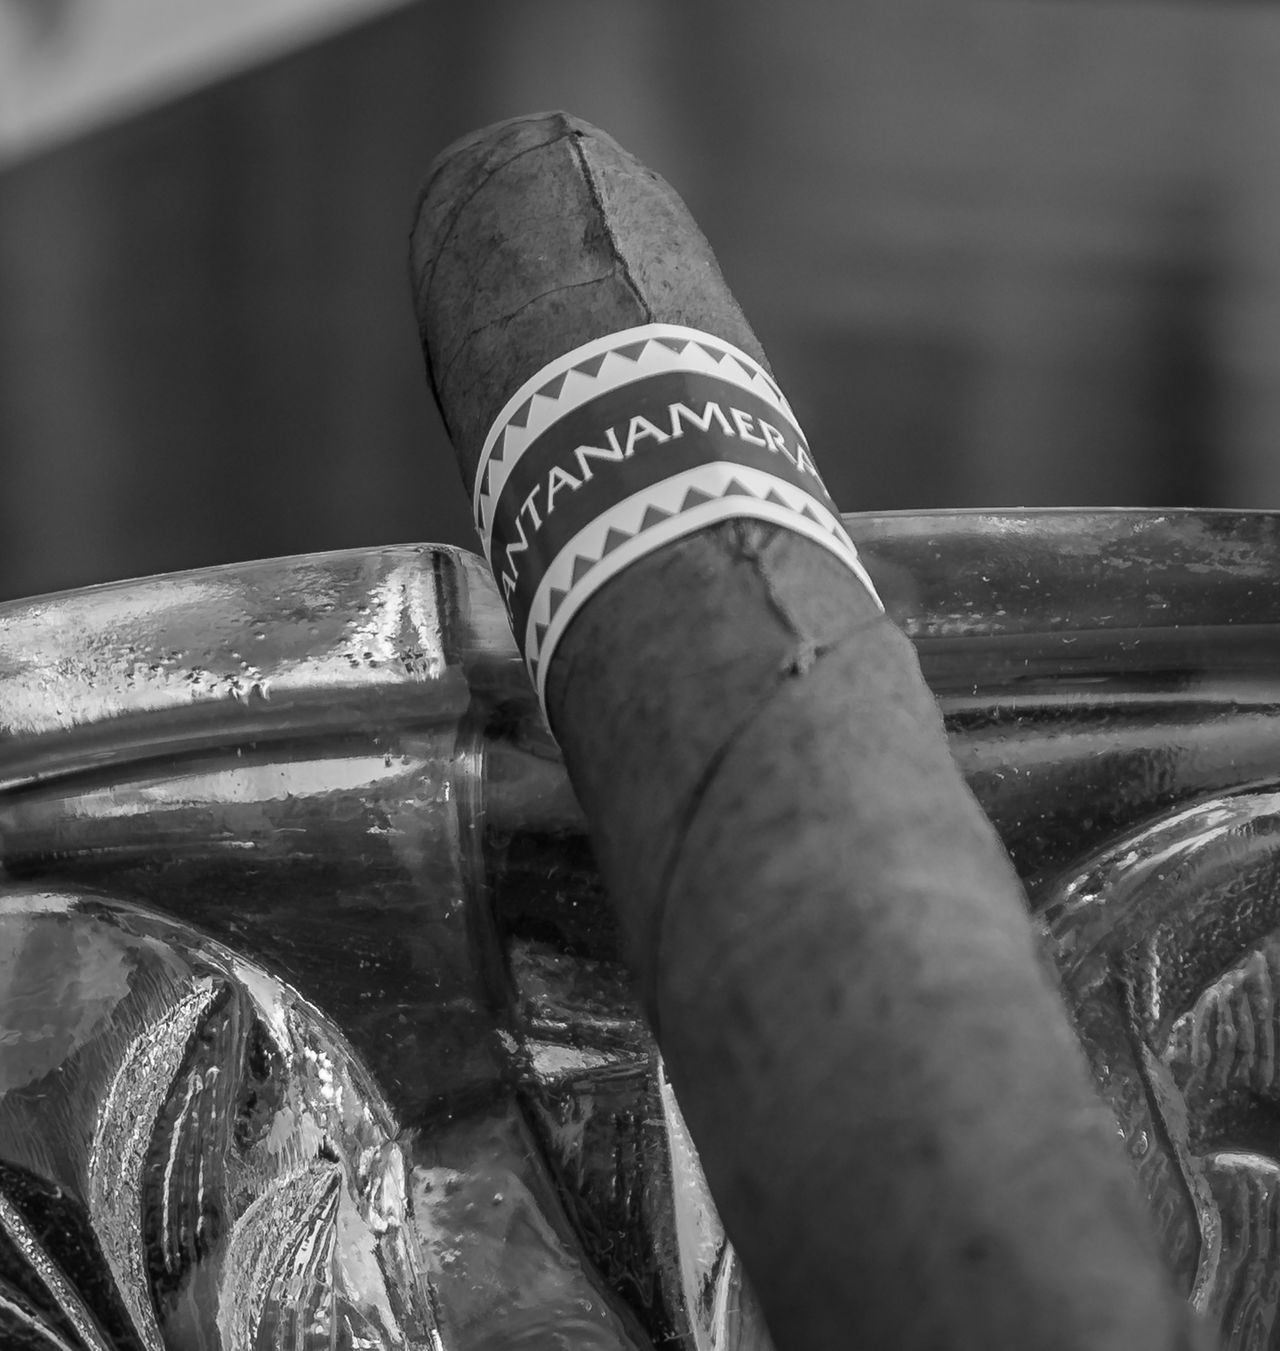 Ashtray  Black & White Blackandwhite Photography Cigar Close-up Day Focus On Foreground Glass Indoors